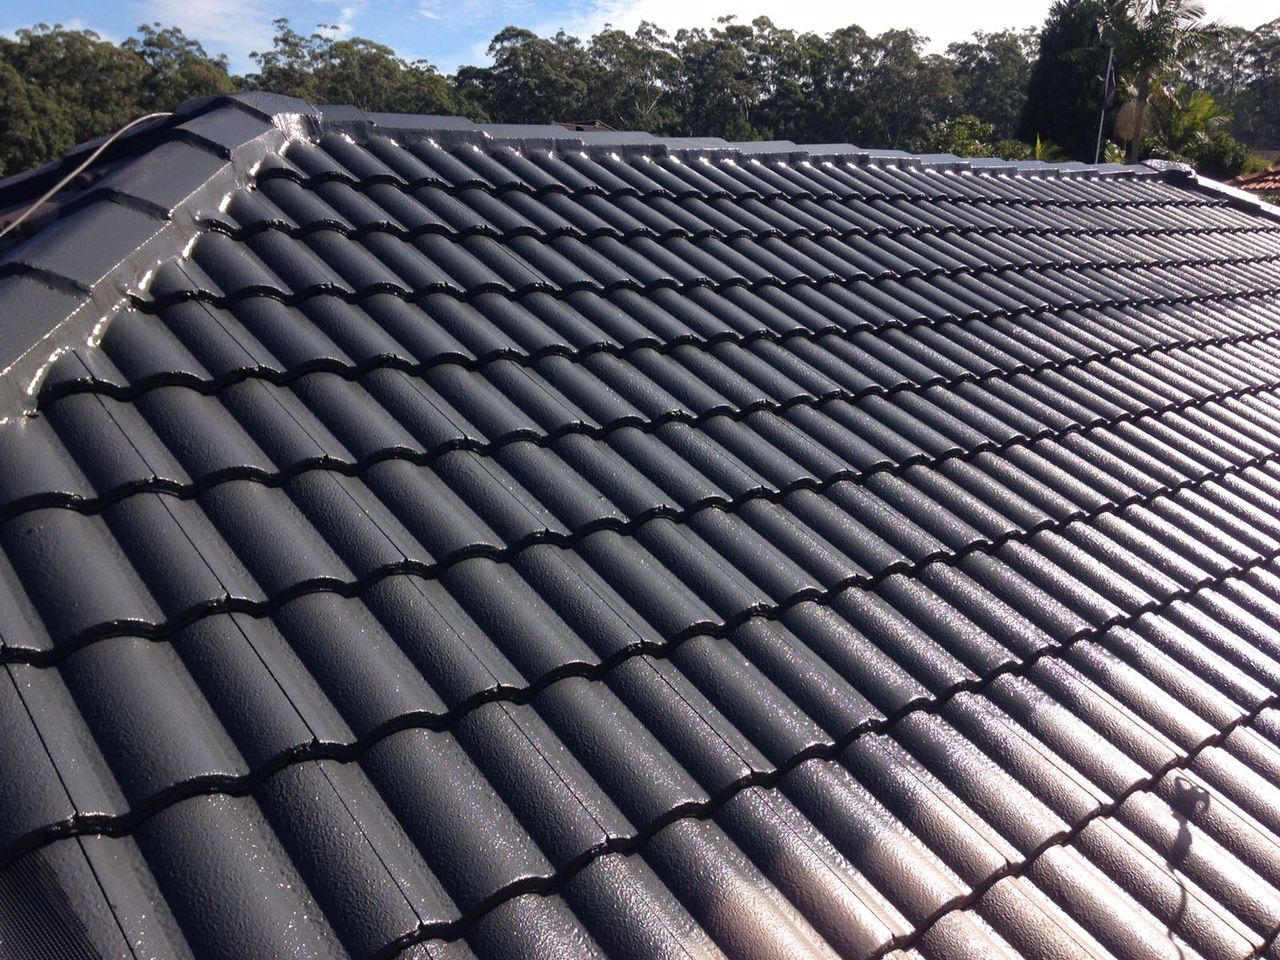 As A Professional Roofing Service Provider High Class Roofing Has Been Proudly Complete Roofpainting In And Ar Roof Restoration Roof Repair Roof Maintenance